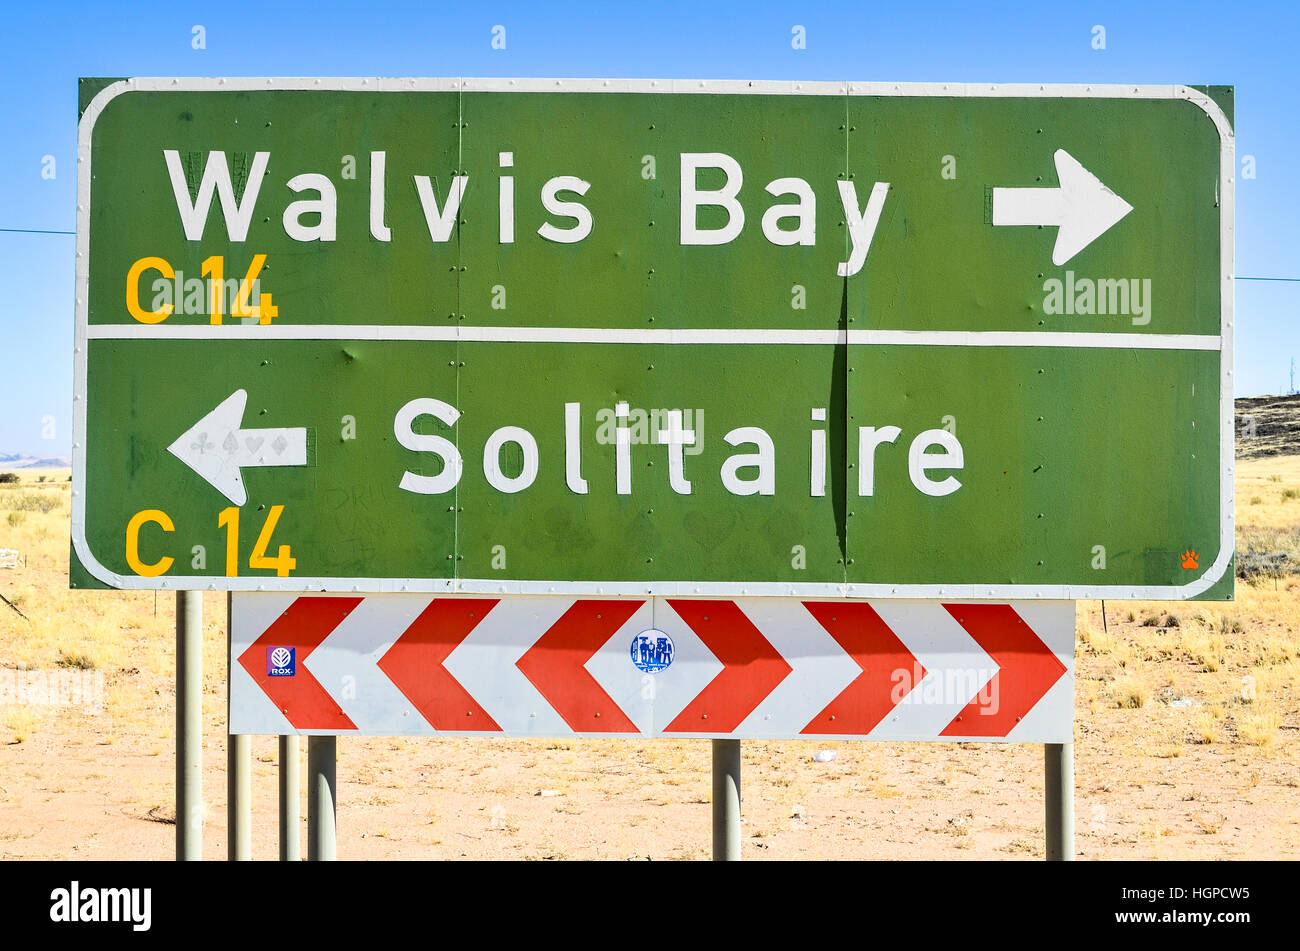 Road sign between Walvis Bay and Solitaire, Namibia - Stock Image